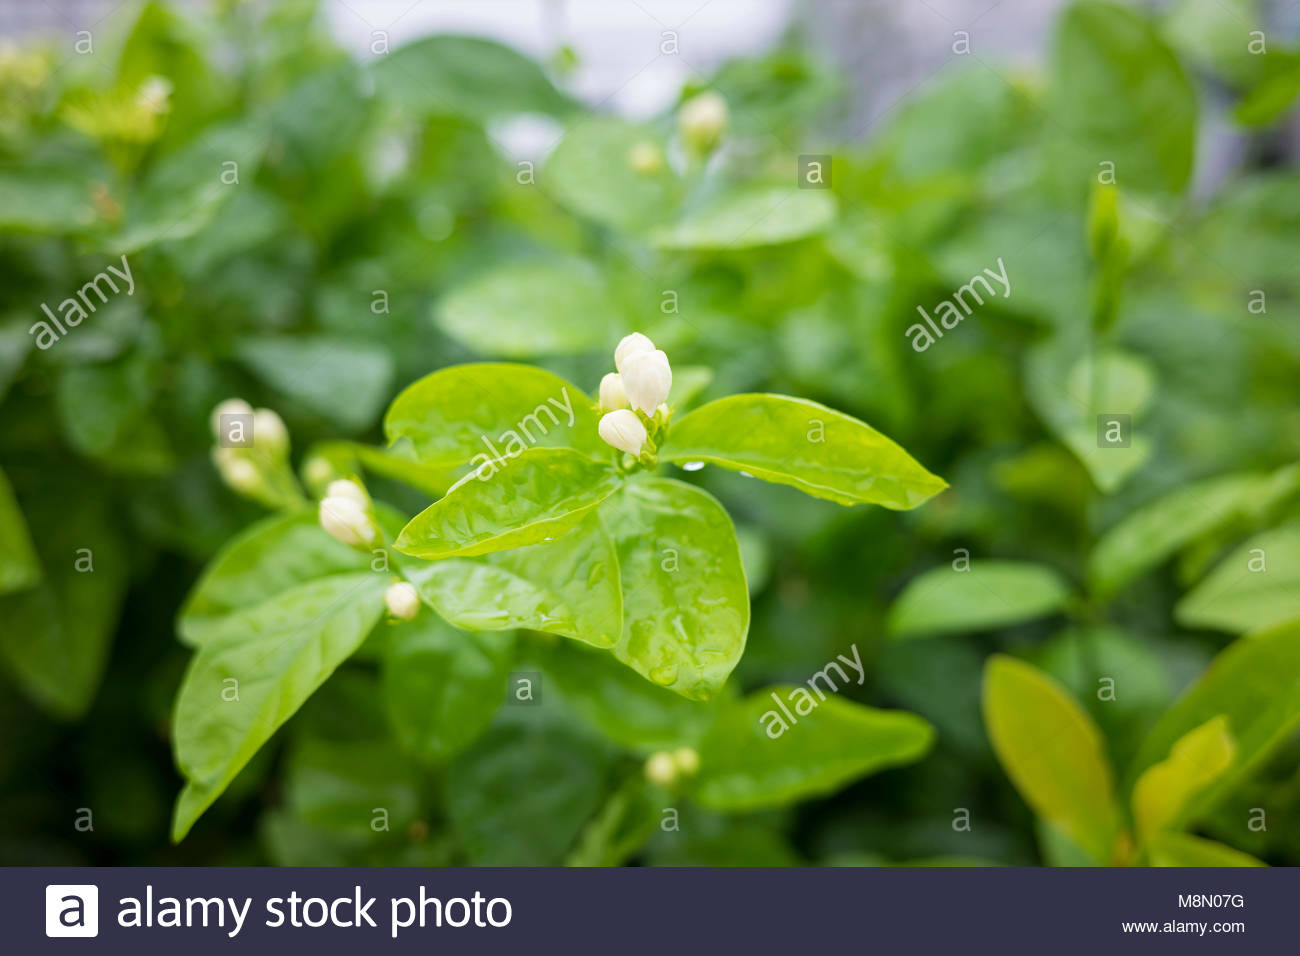 Cluster Of Jasmine Flower Buds Branches Focus On Flower Stock Photo